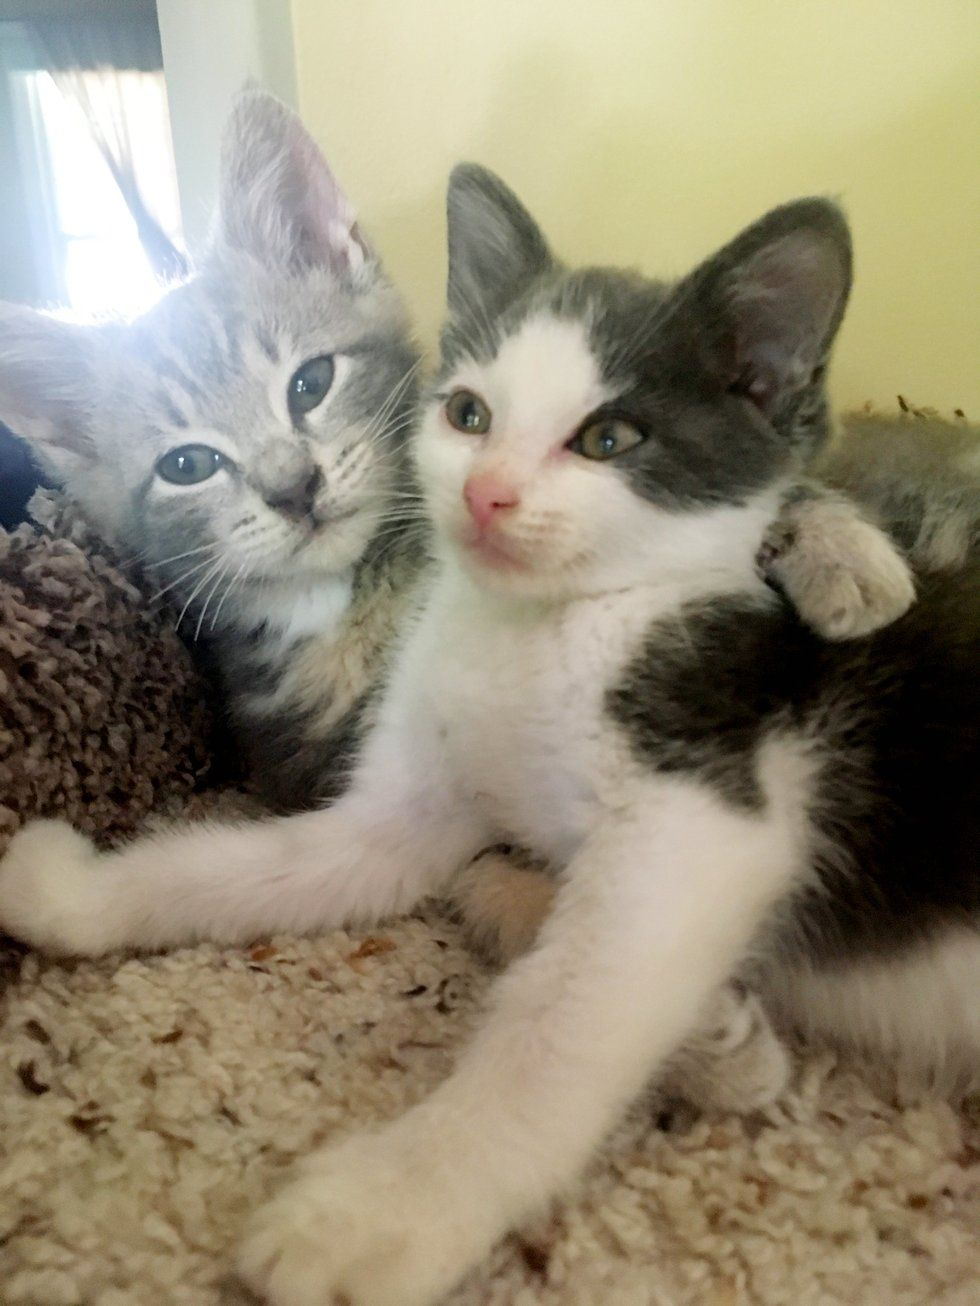 Kitten Who Lost His Siblings, Finds New Brother to Cuddle